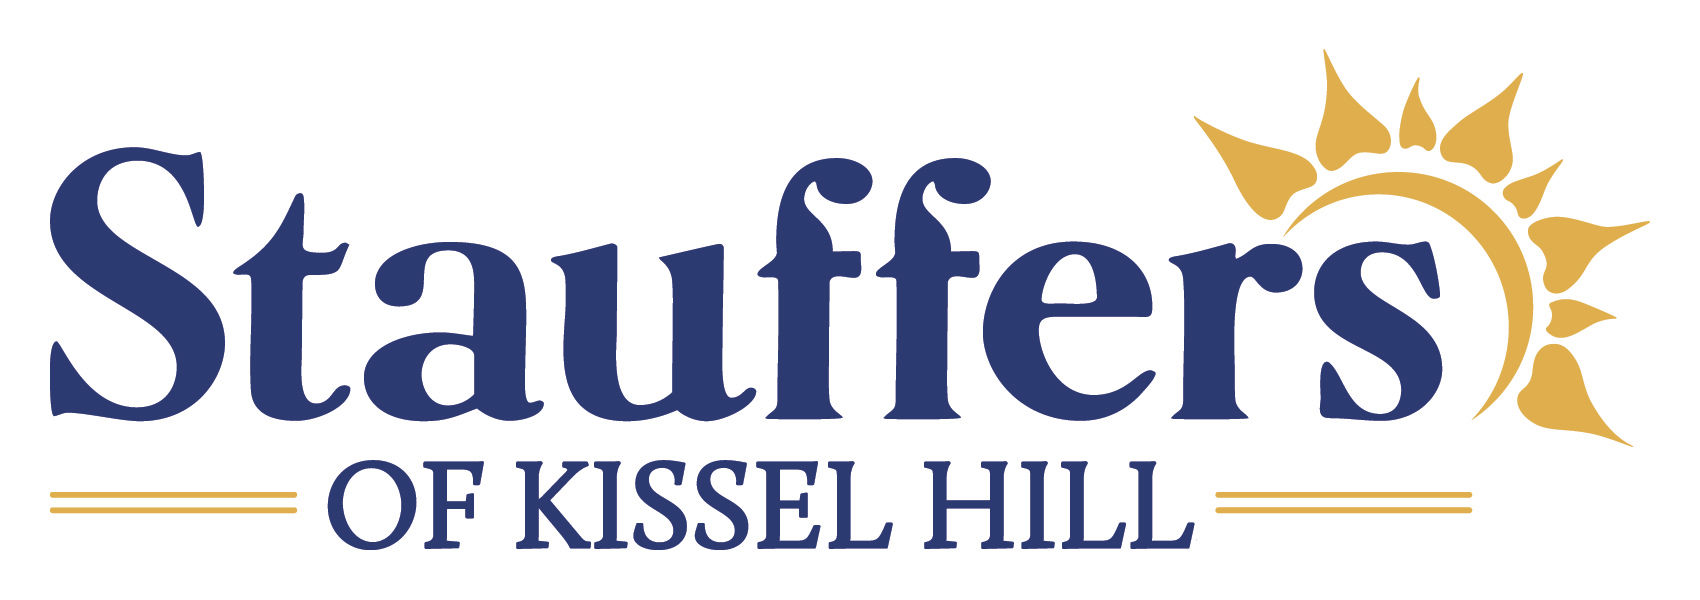 Stauffers Of Kissel Hill New Logo Nice Look